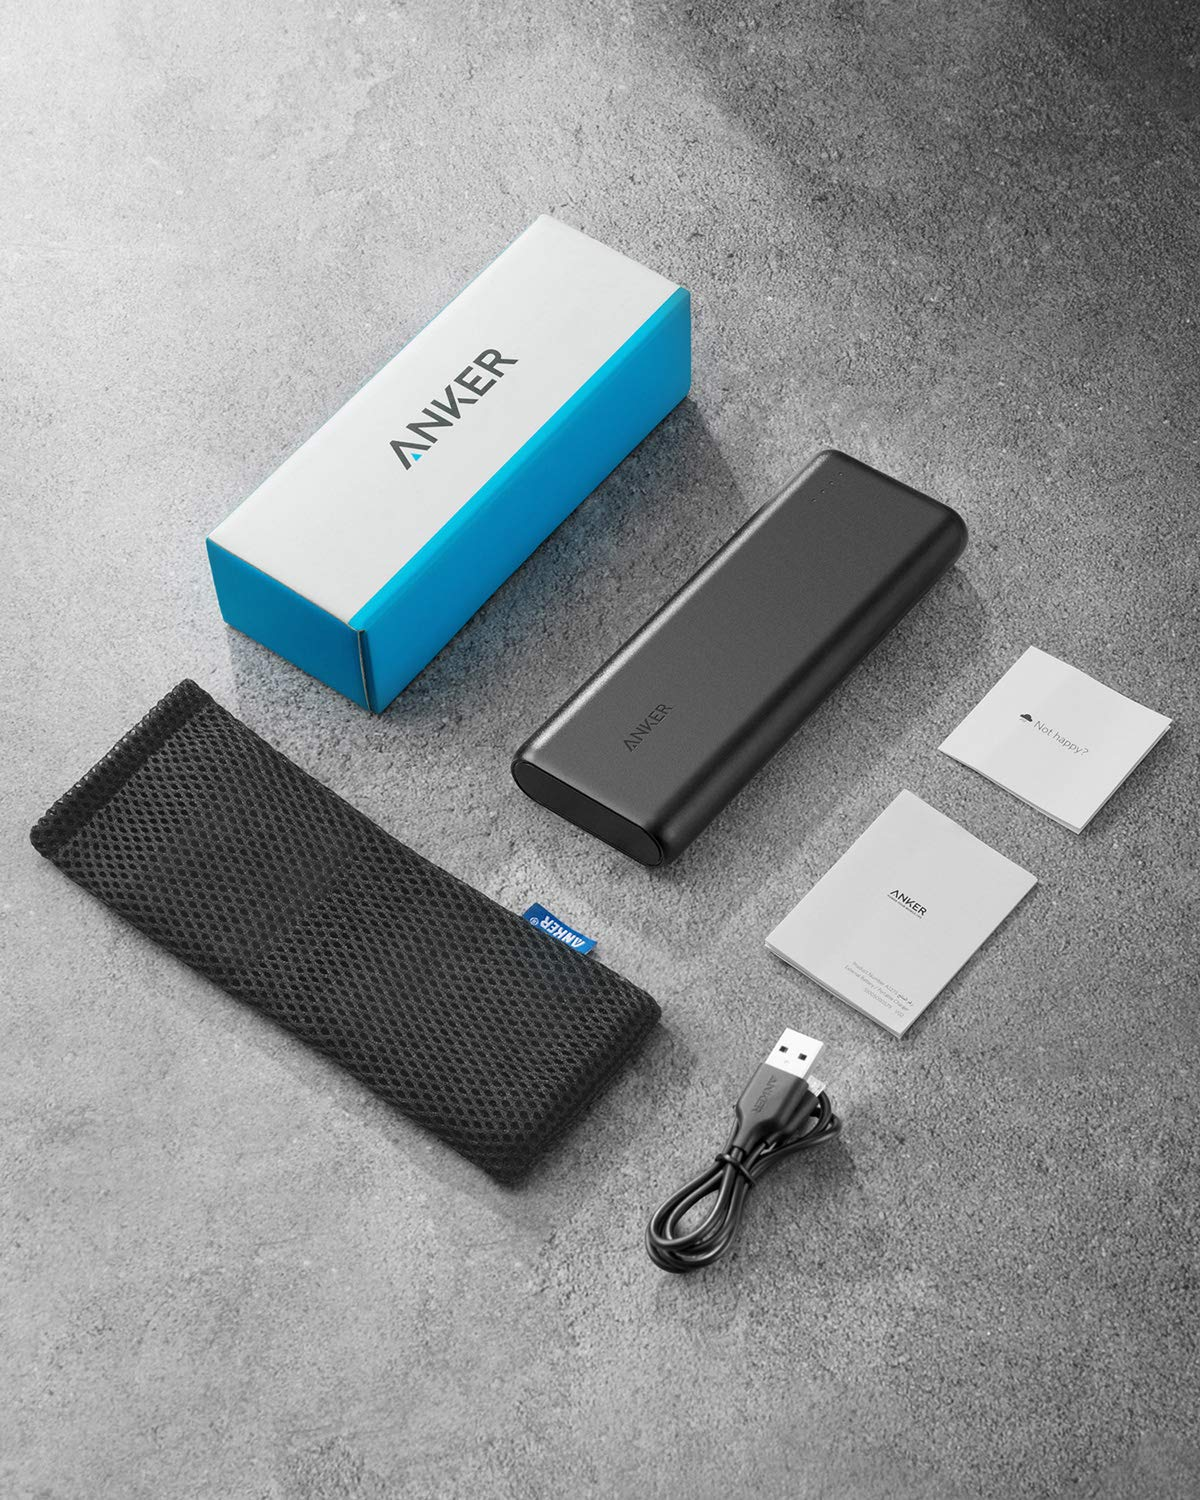 Portable Charger Anker PowerCore 20100mAh - Ultra High Capacity Power Bank with 4.8A Output, External Battery Pack for iPhone, iPad & Samsung Galaxy & More (Black) by Anker (Image #8)